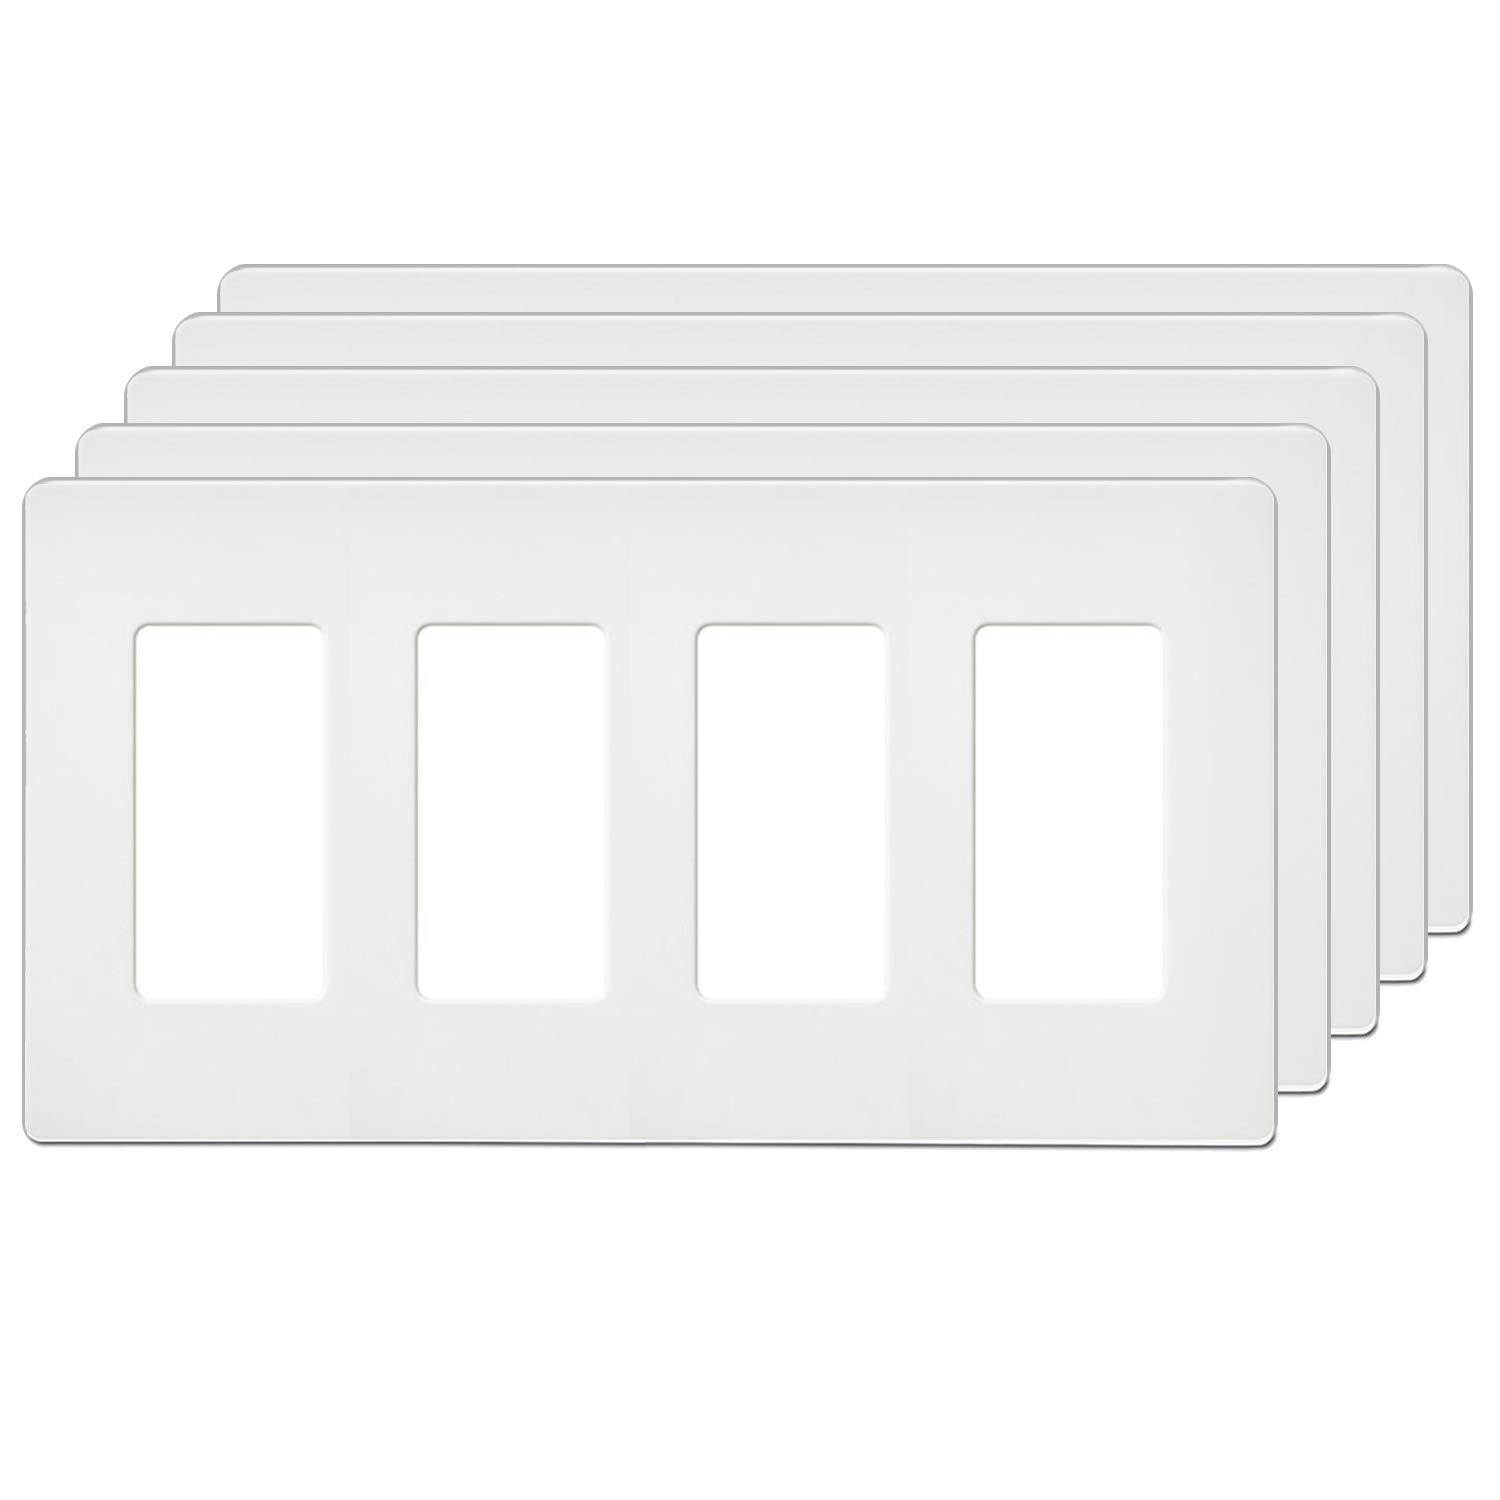 [5 Pack] BESTTEN Screwless Wall Plates, USWP4 Series, 4-Gang Outlet Covers for GFCI, Decorator Receptacle, Dimmer and Light Switch, Residential and Commercial Grade, UL Listed, White